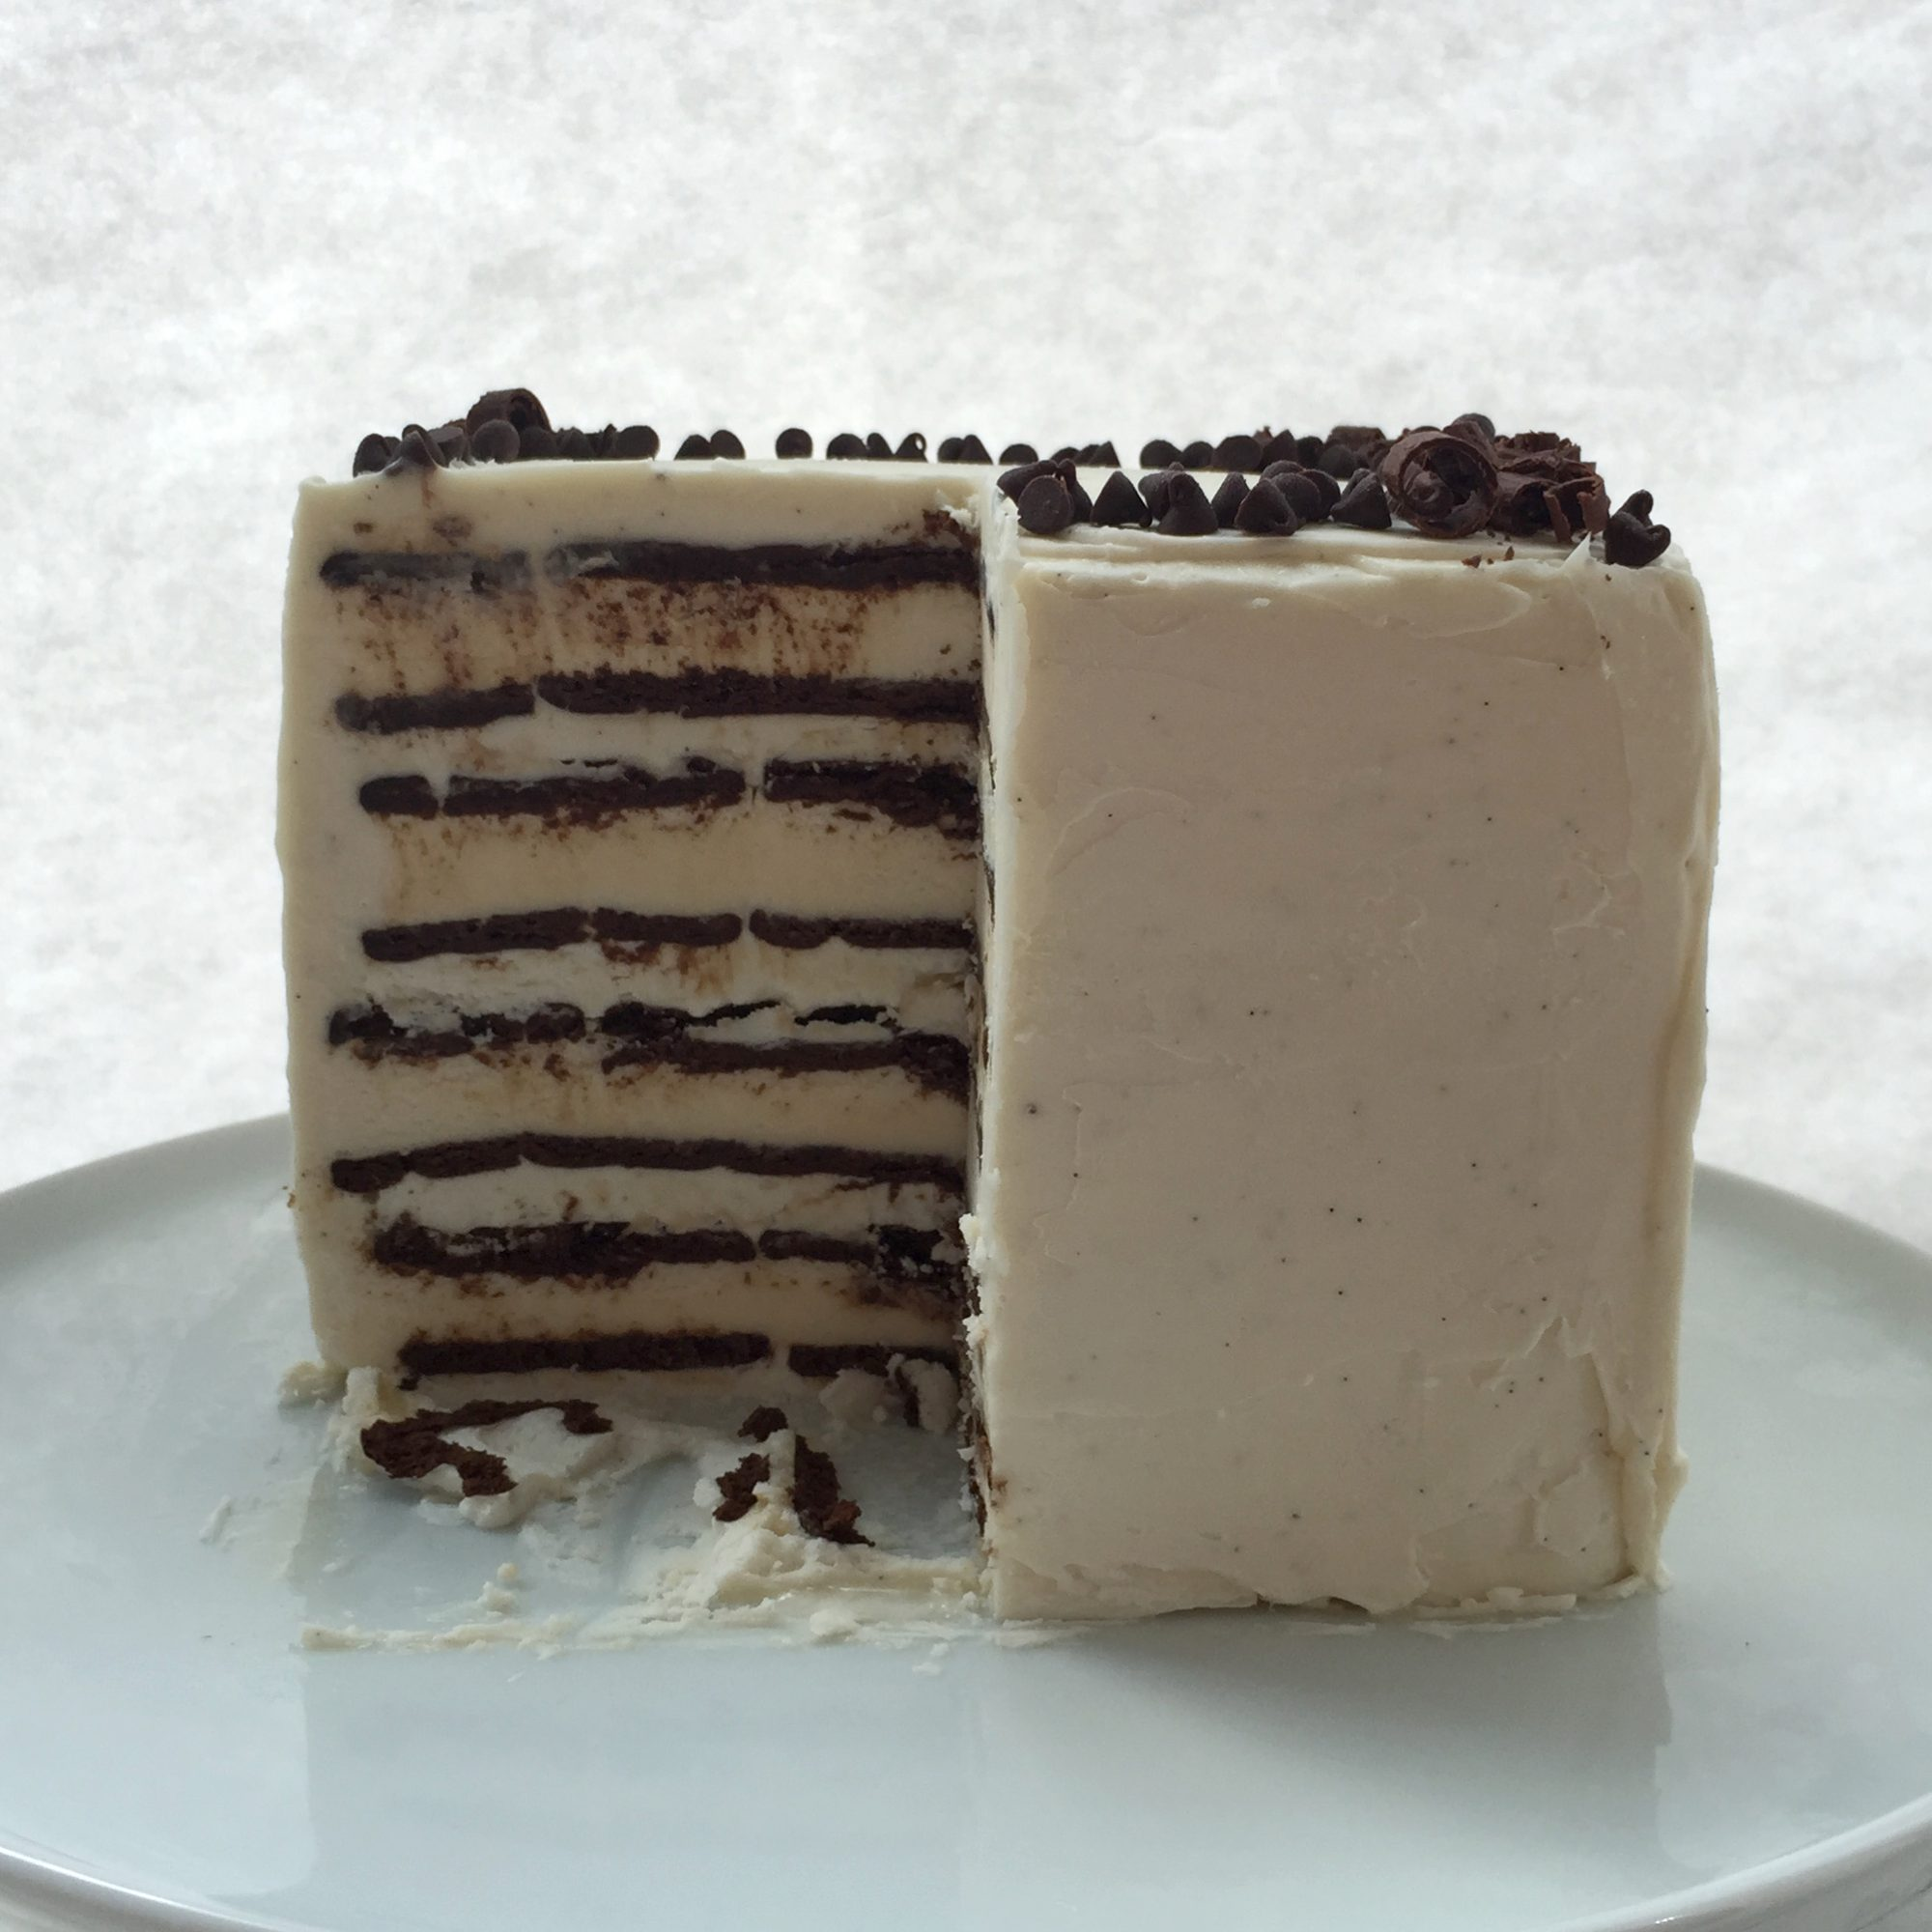 Ice Cream Cake Hd Images : How to Make the Easiest DIY Ice Cream Cake Ever Food & Wine